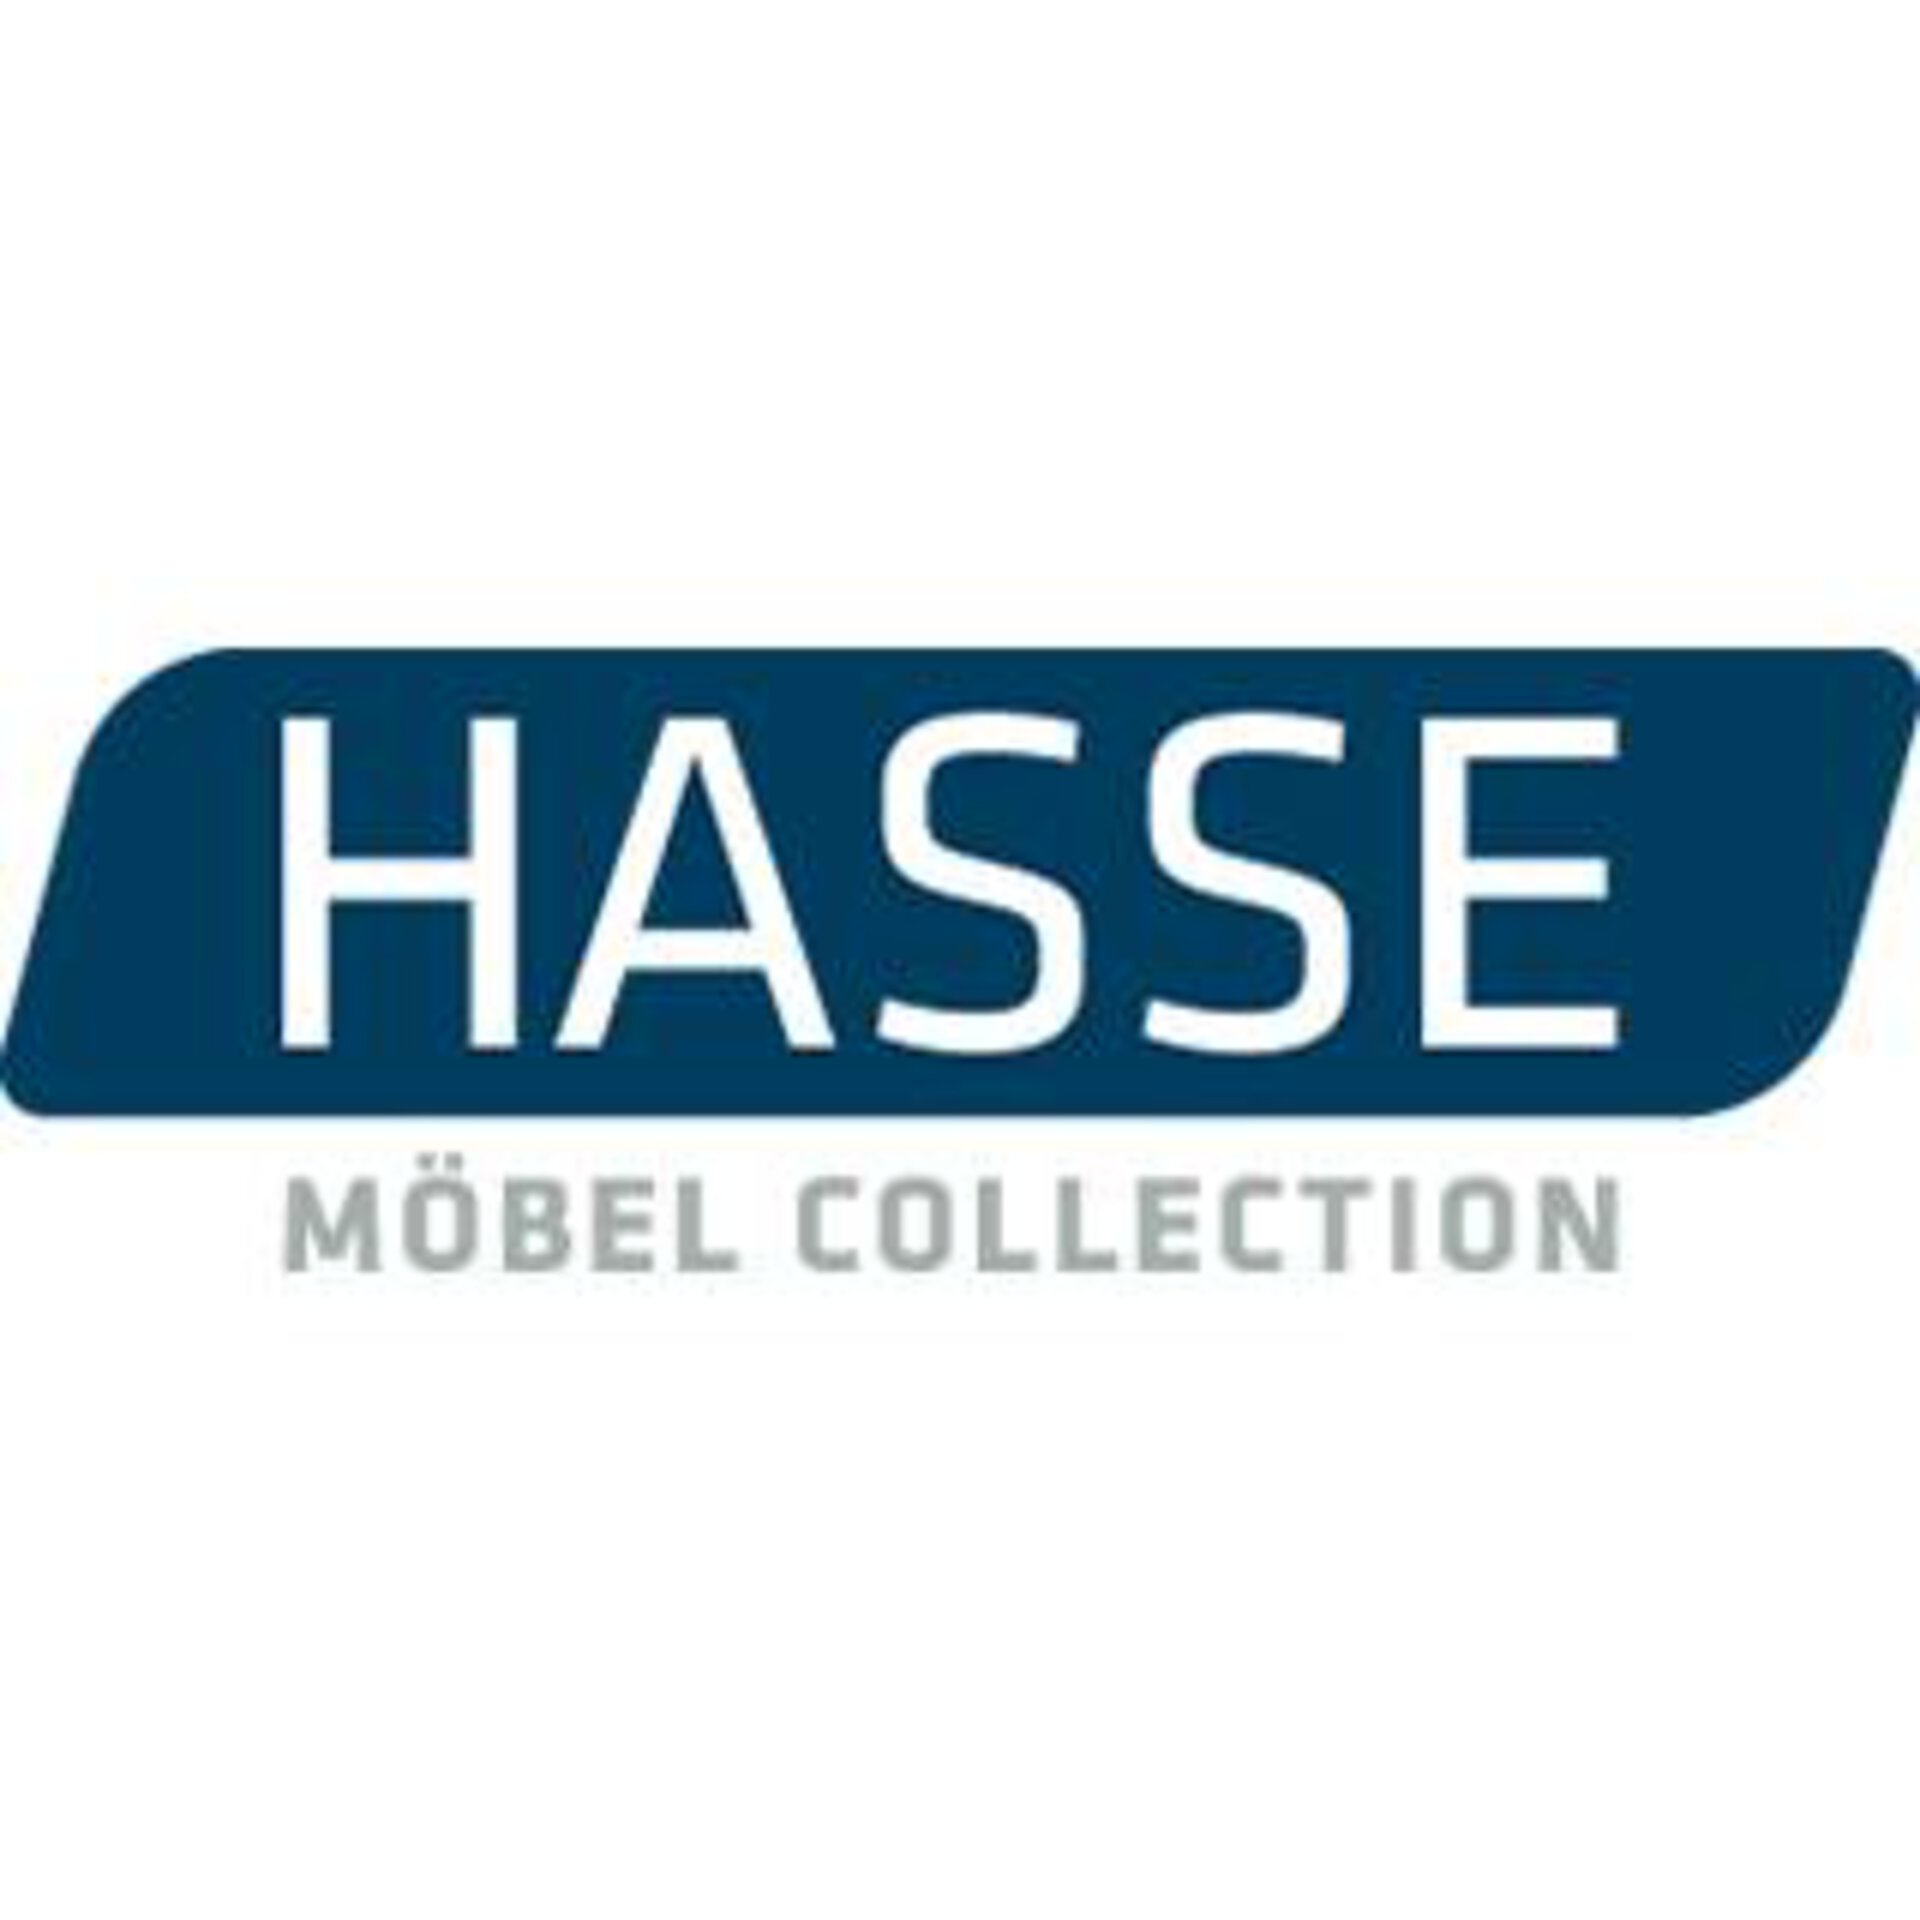 Hasse Möbel Collection